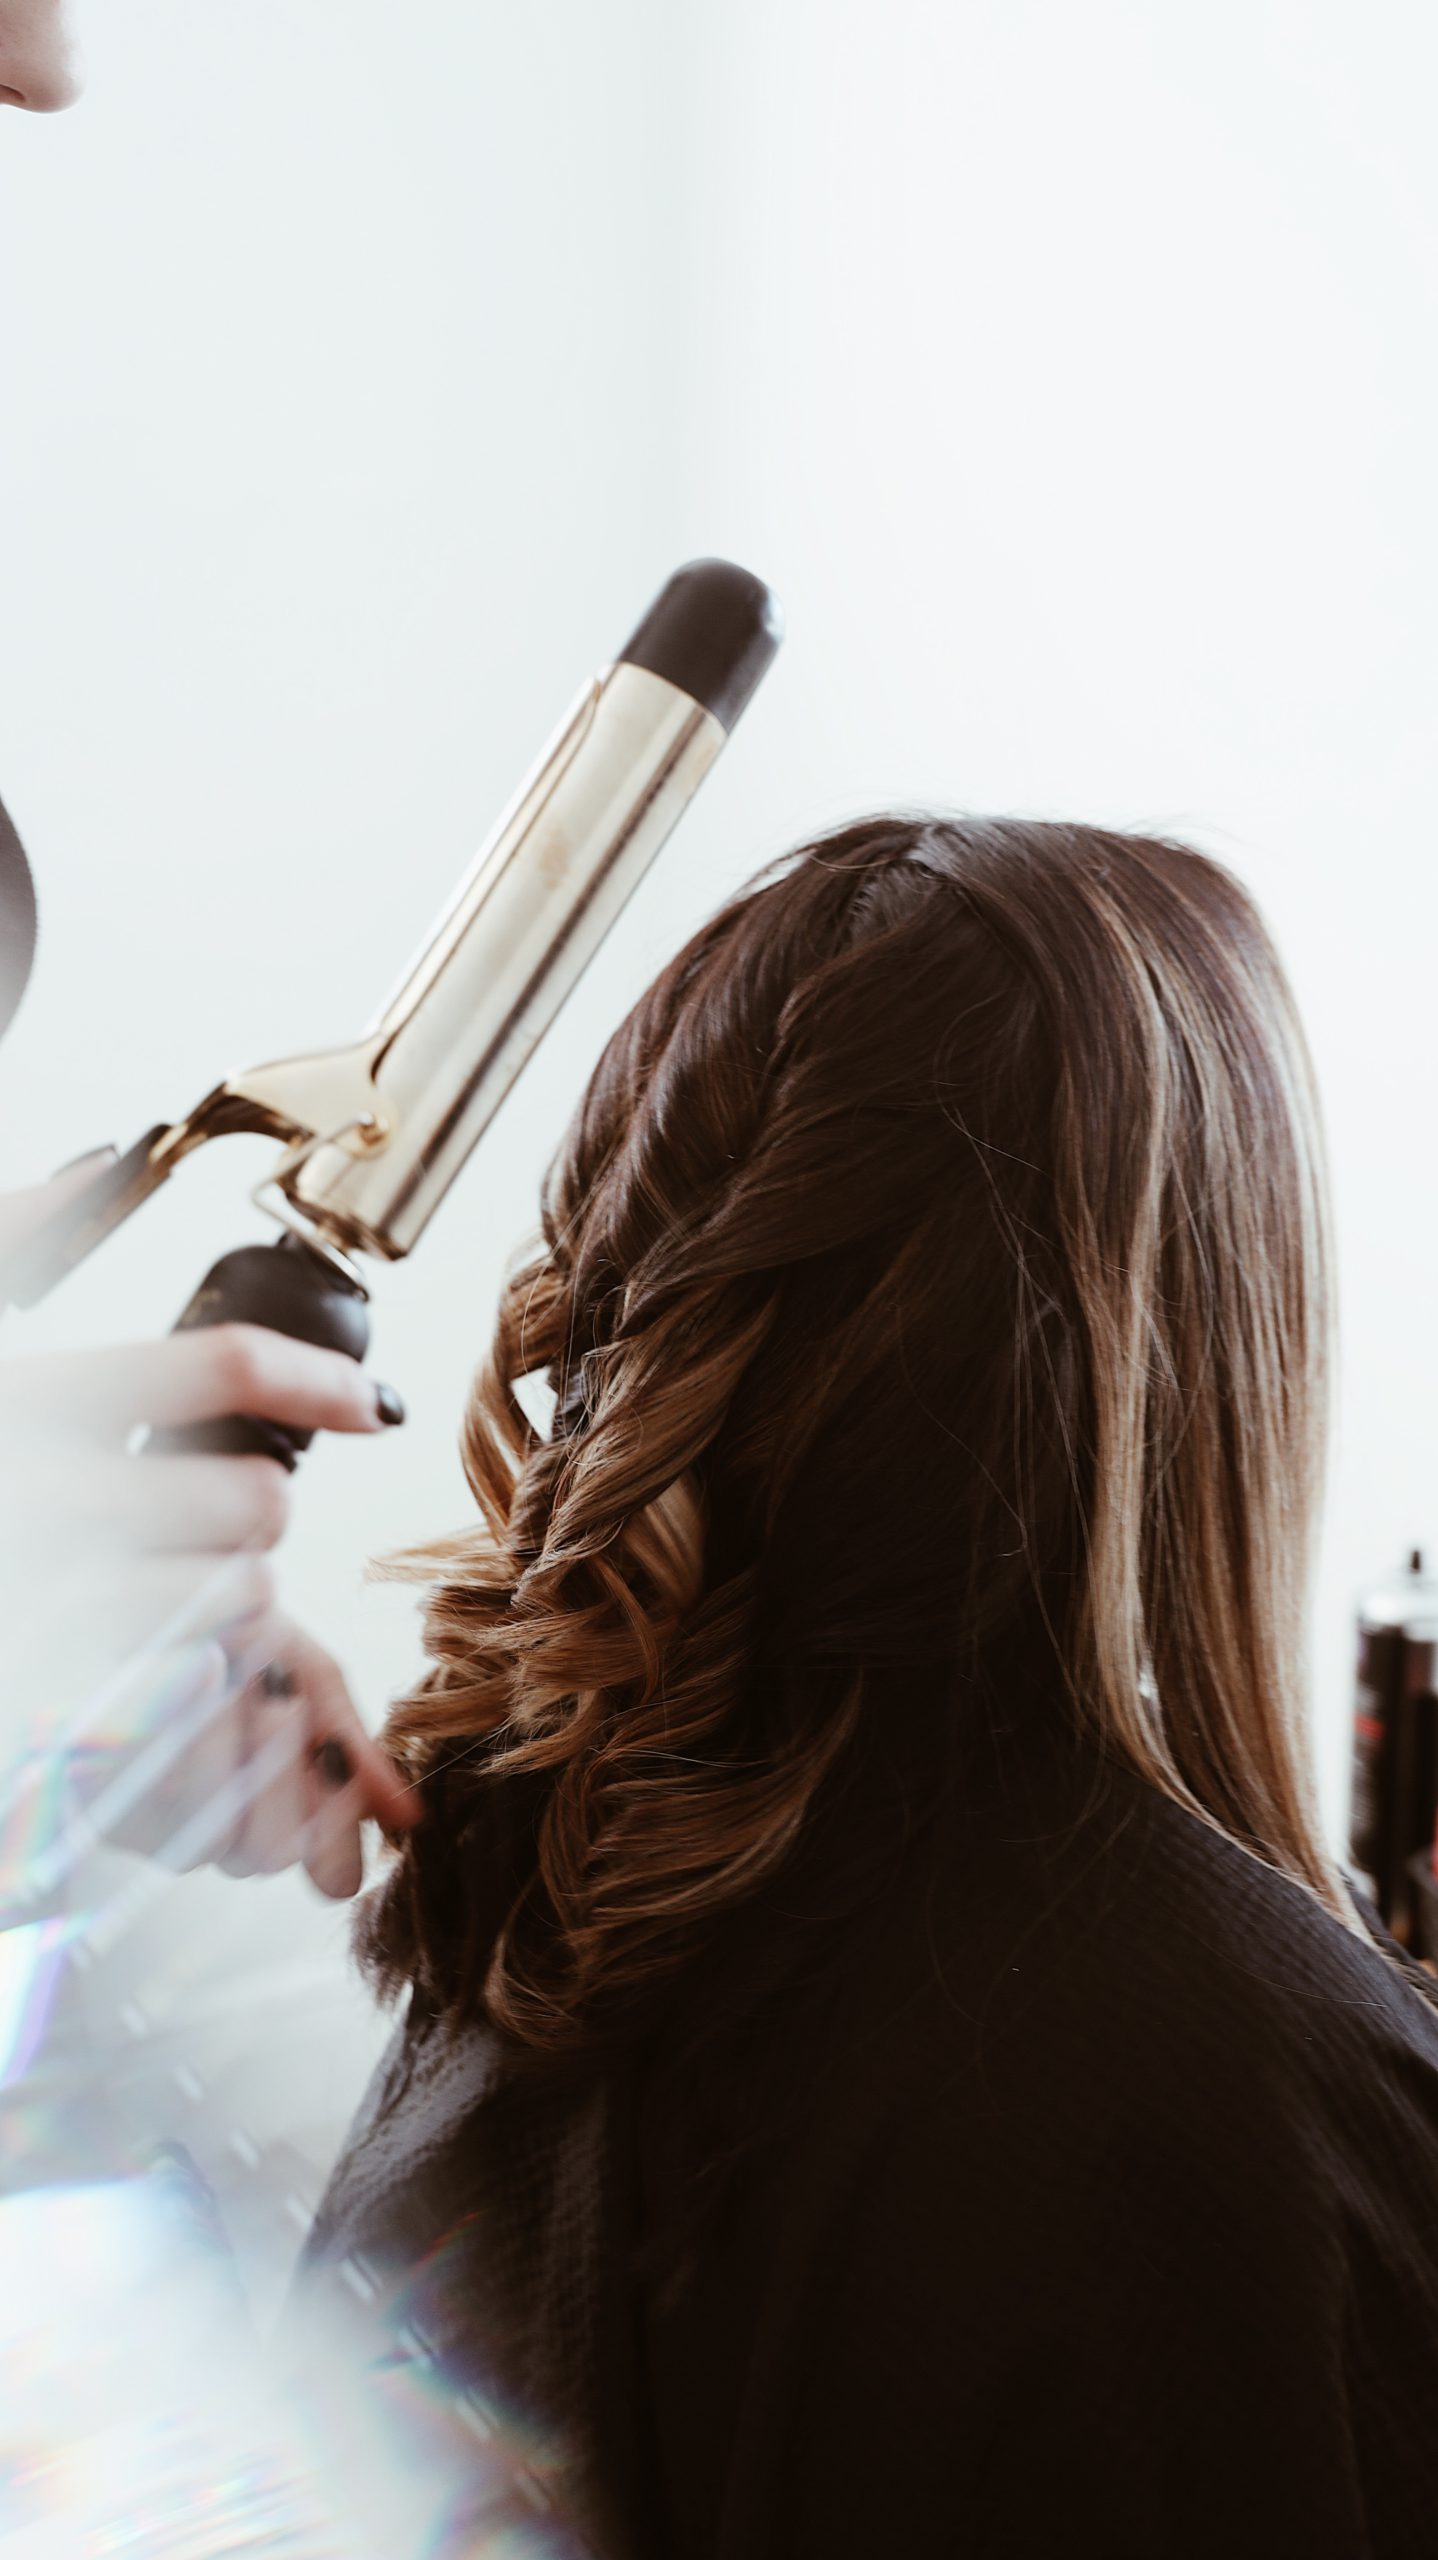 A curling iron behind a brunette woman on a white background.